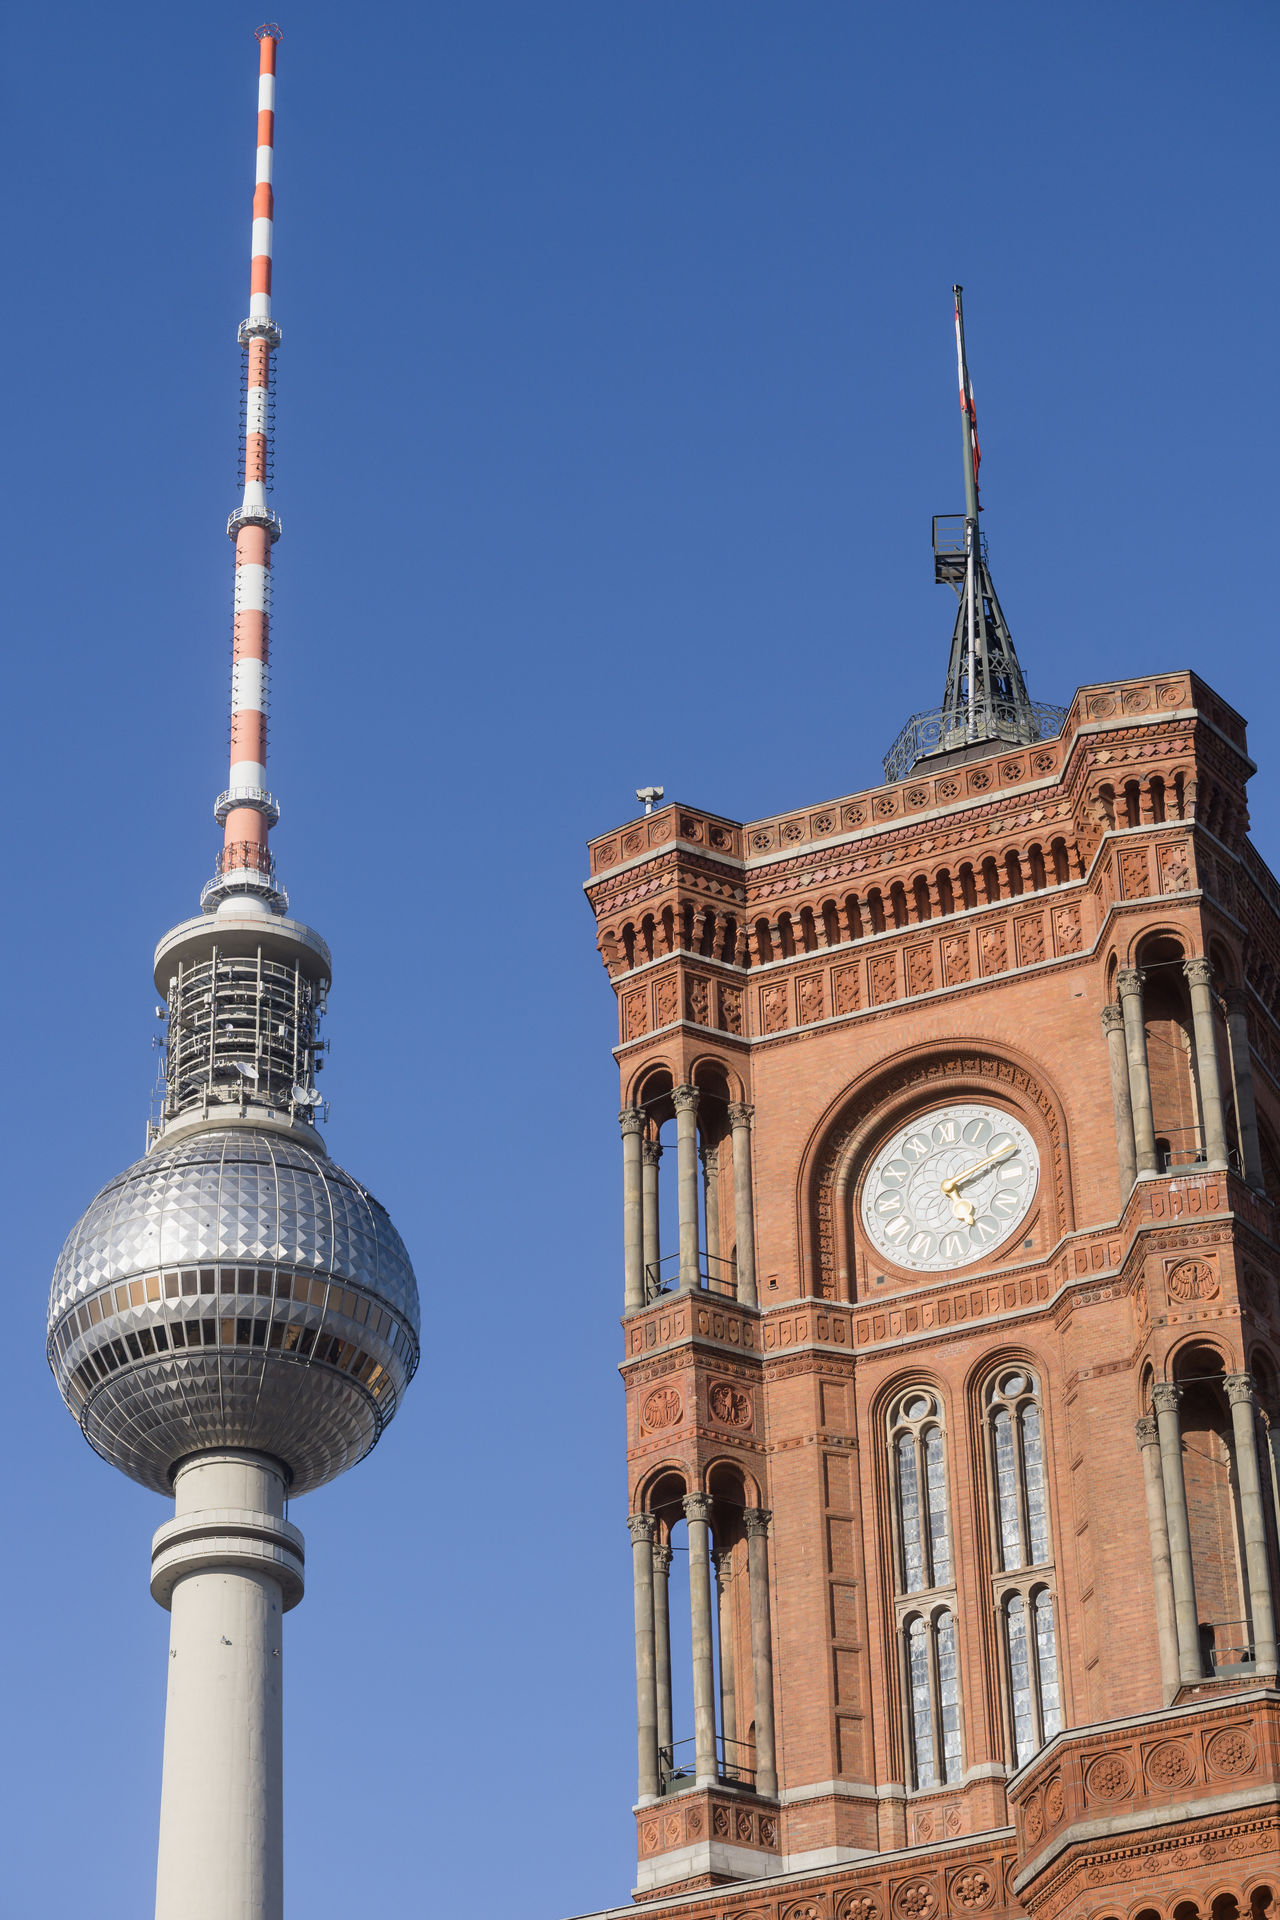 TV Tower and City Hall in Berlin, Germany Alexanderplatz Architecture Berlin Broadcasting City City Hall Communication Day Fernsehturm Germany No People Outdoors Rotes Rathaus Sky Tourism Tower Travel Travel Destinations TV Tower Urban Skyline